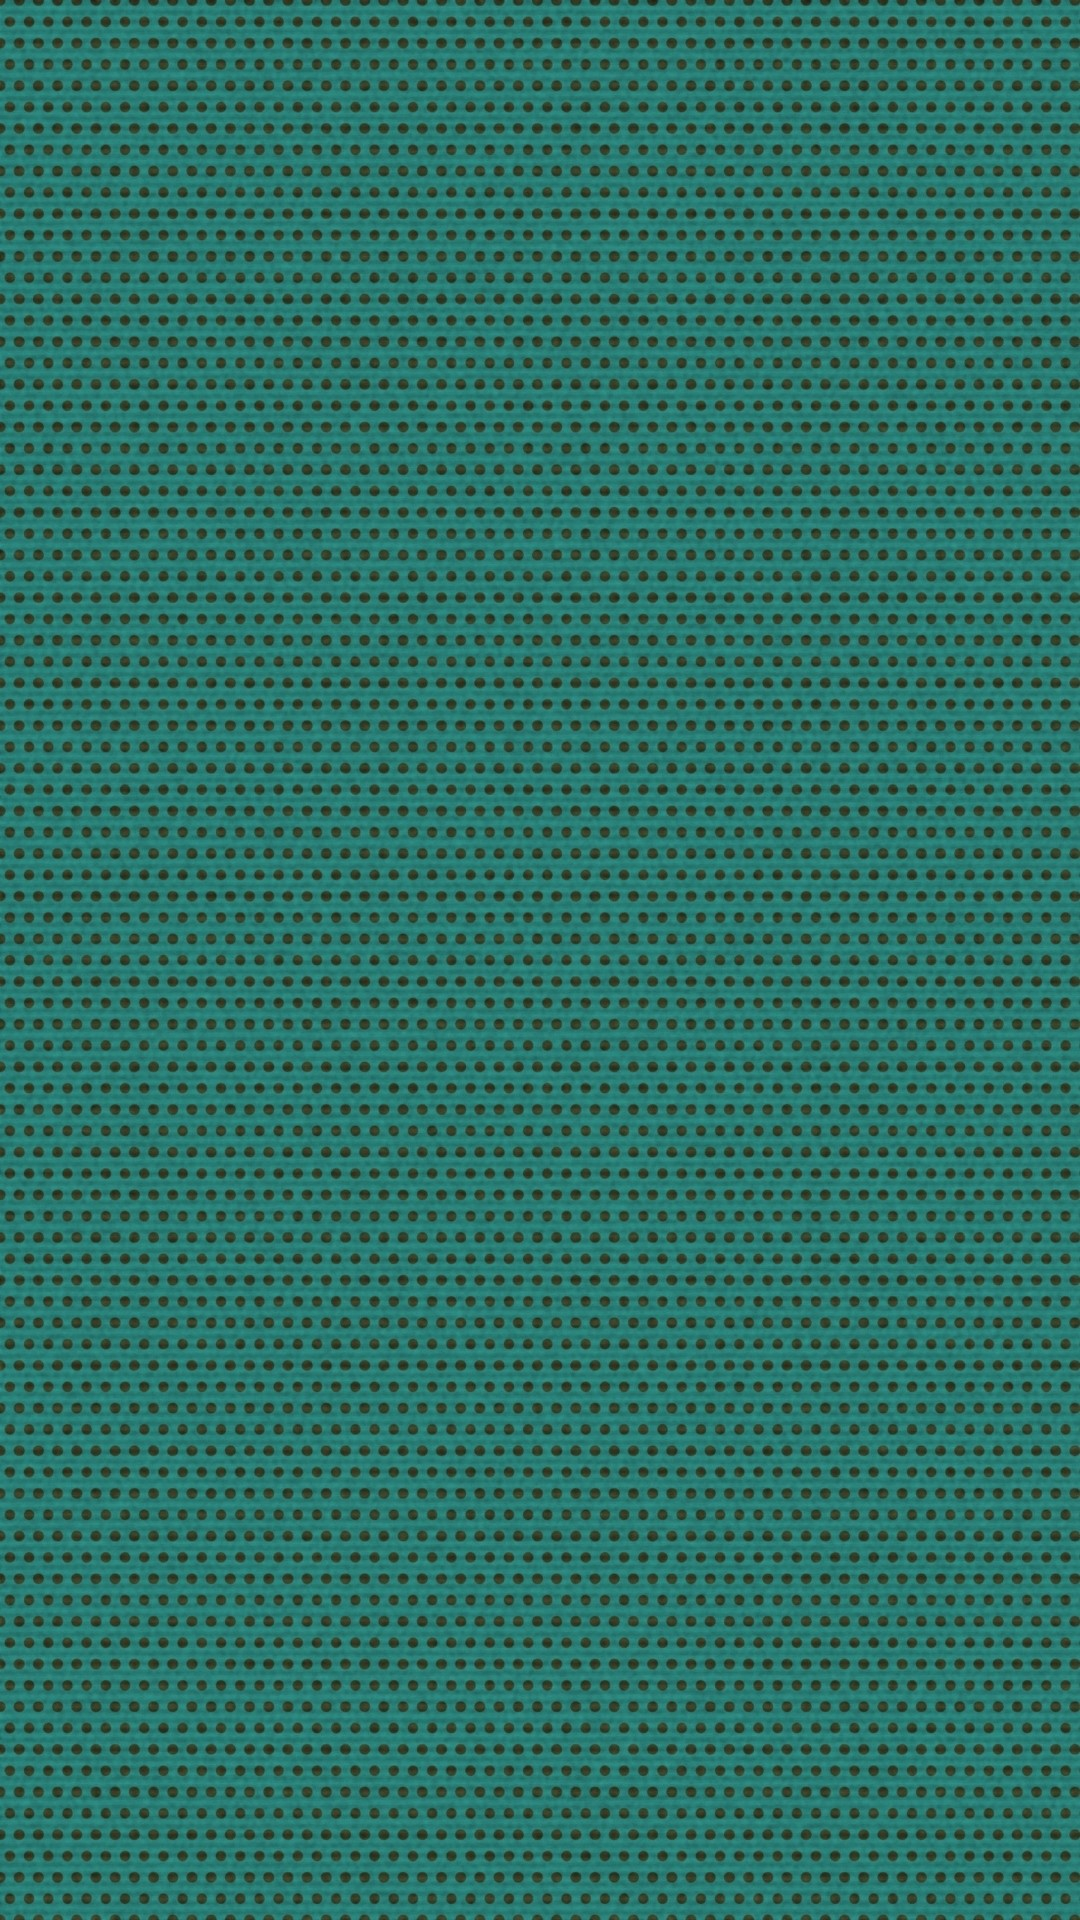 1080x1920 iPhone 6 Plus Wallpaper Green Pattern 07 | iPhone 6 Wallpapers